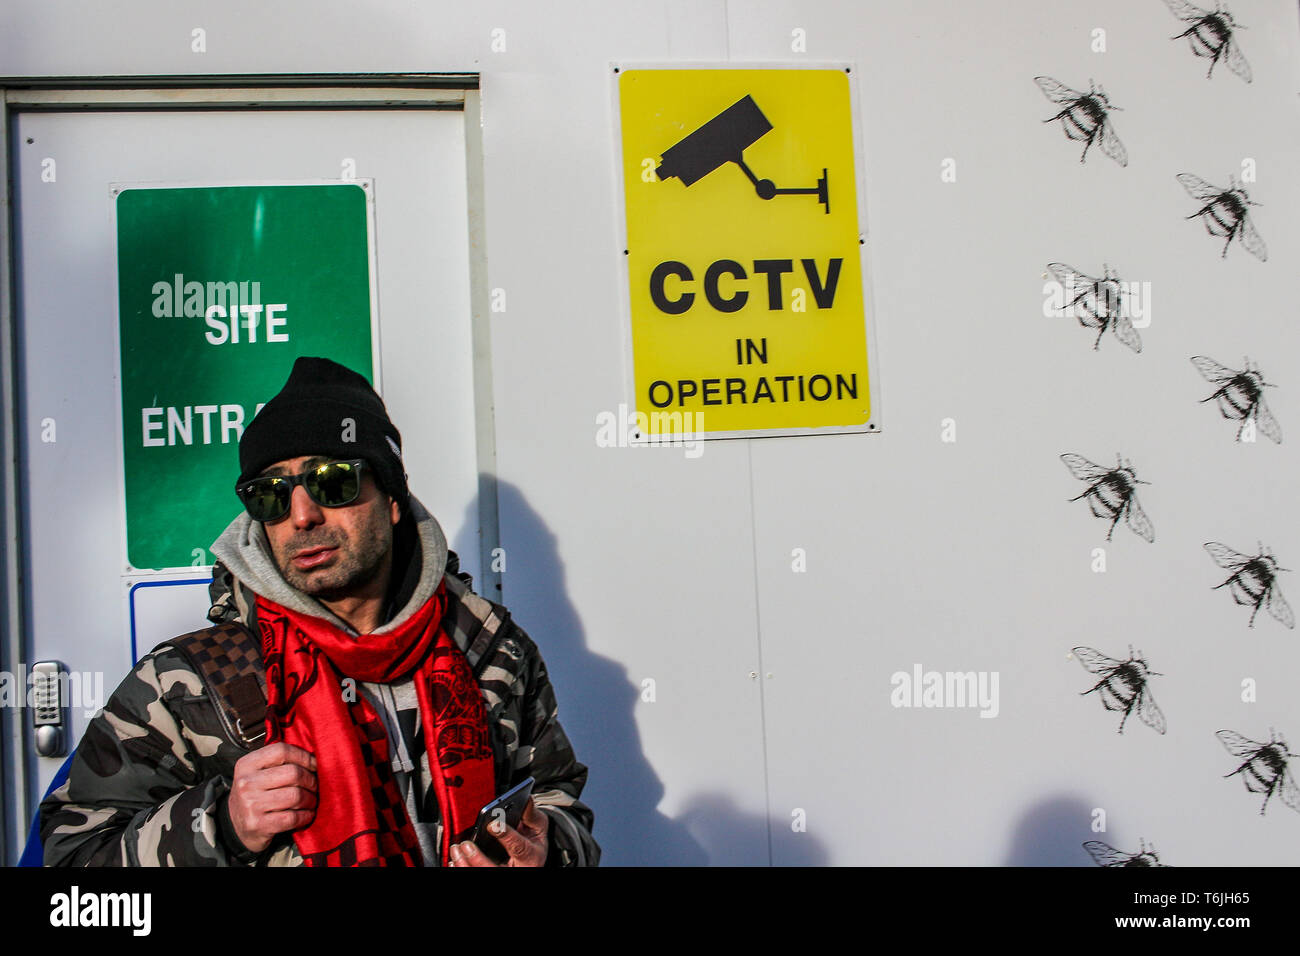 LONDON - FEB 16, 2018: An unidentified man with red scarf and sunglasses next to CCTV Camera Video surveillance sign on site wall. - Stock Image